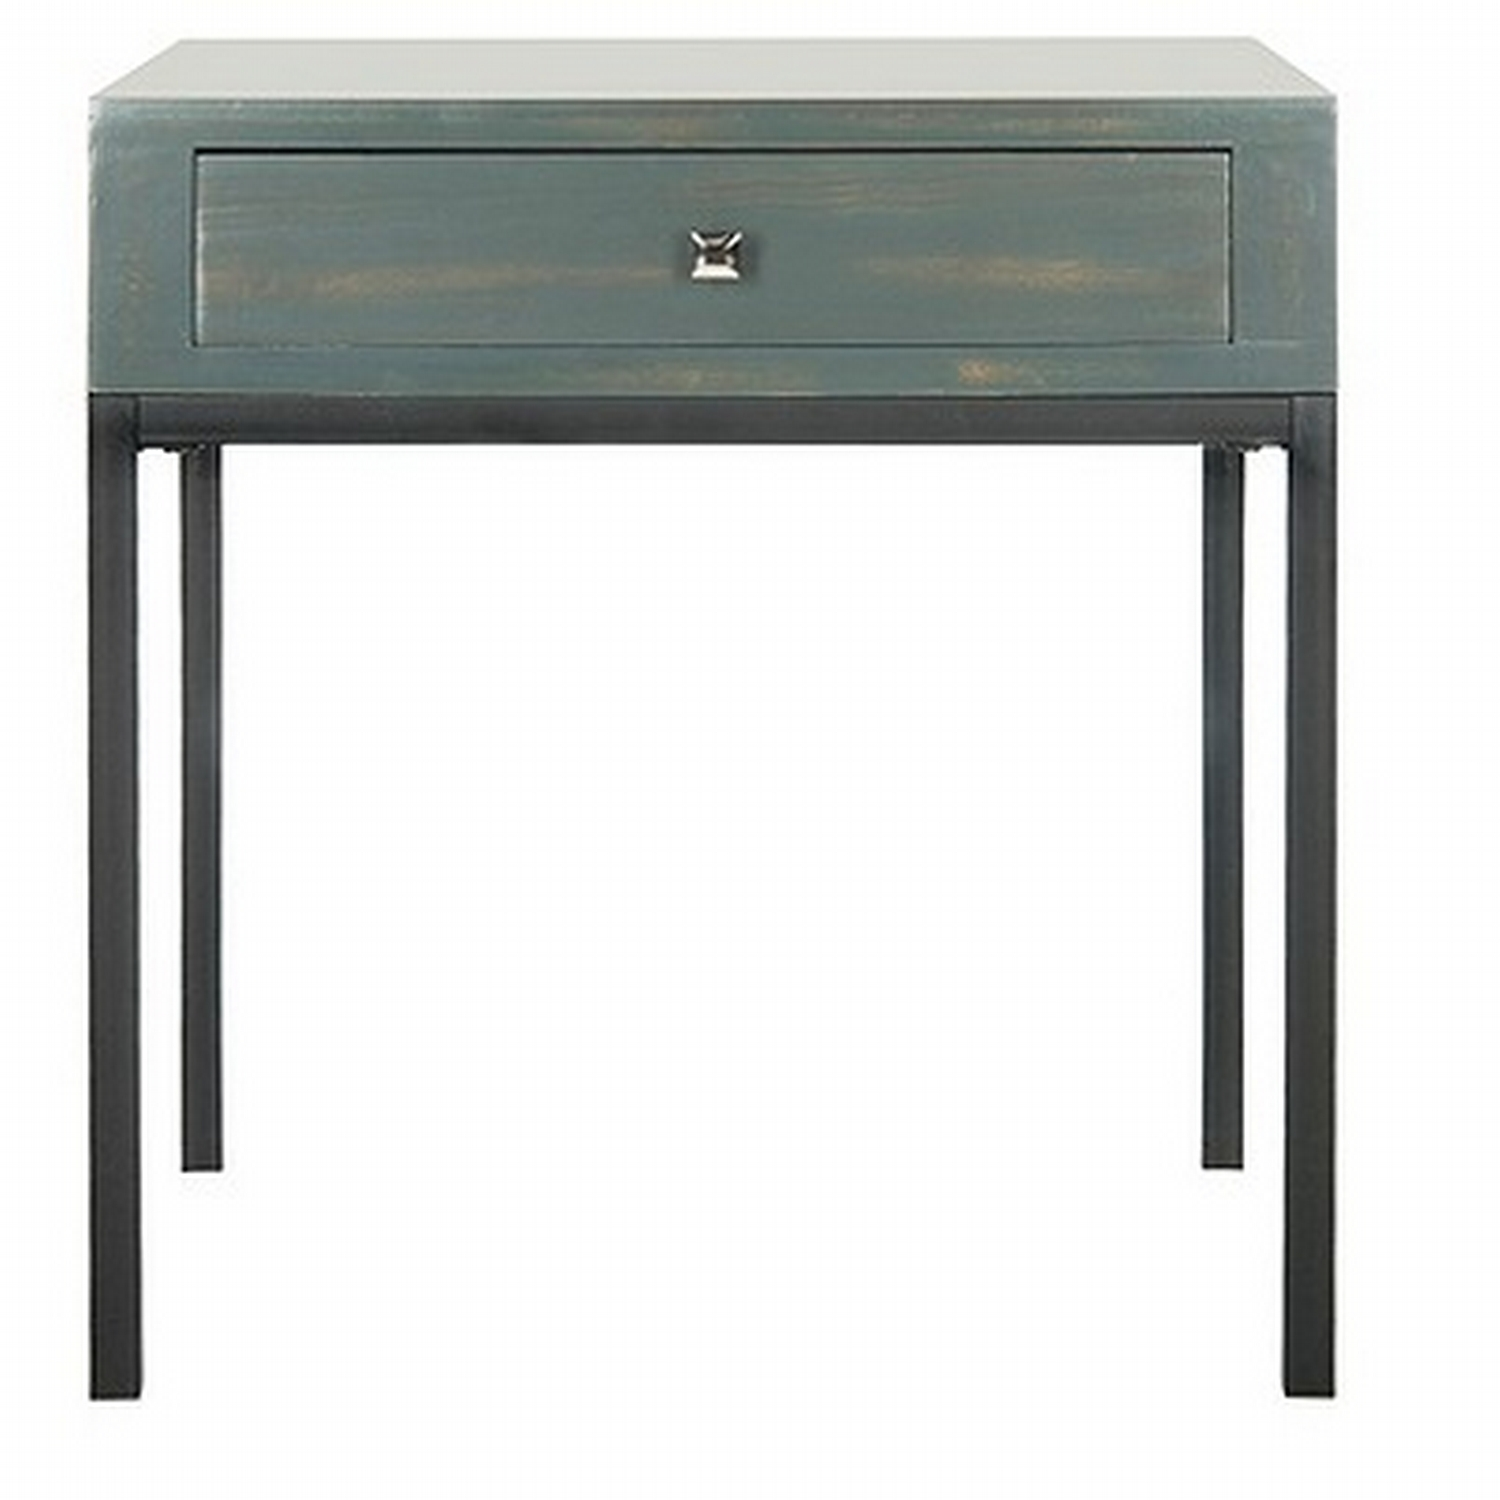 danforth accent table teal blue safavieh your way get west elm arc lamp drop leaf dining room garden drinks cooler white and gold marble black coffee glass top end tables red